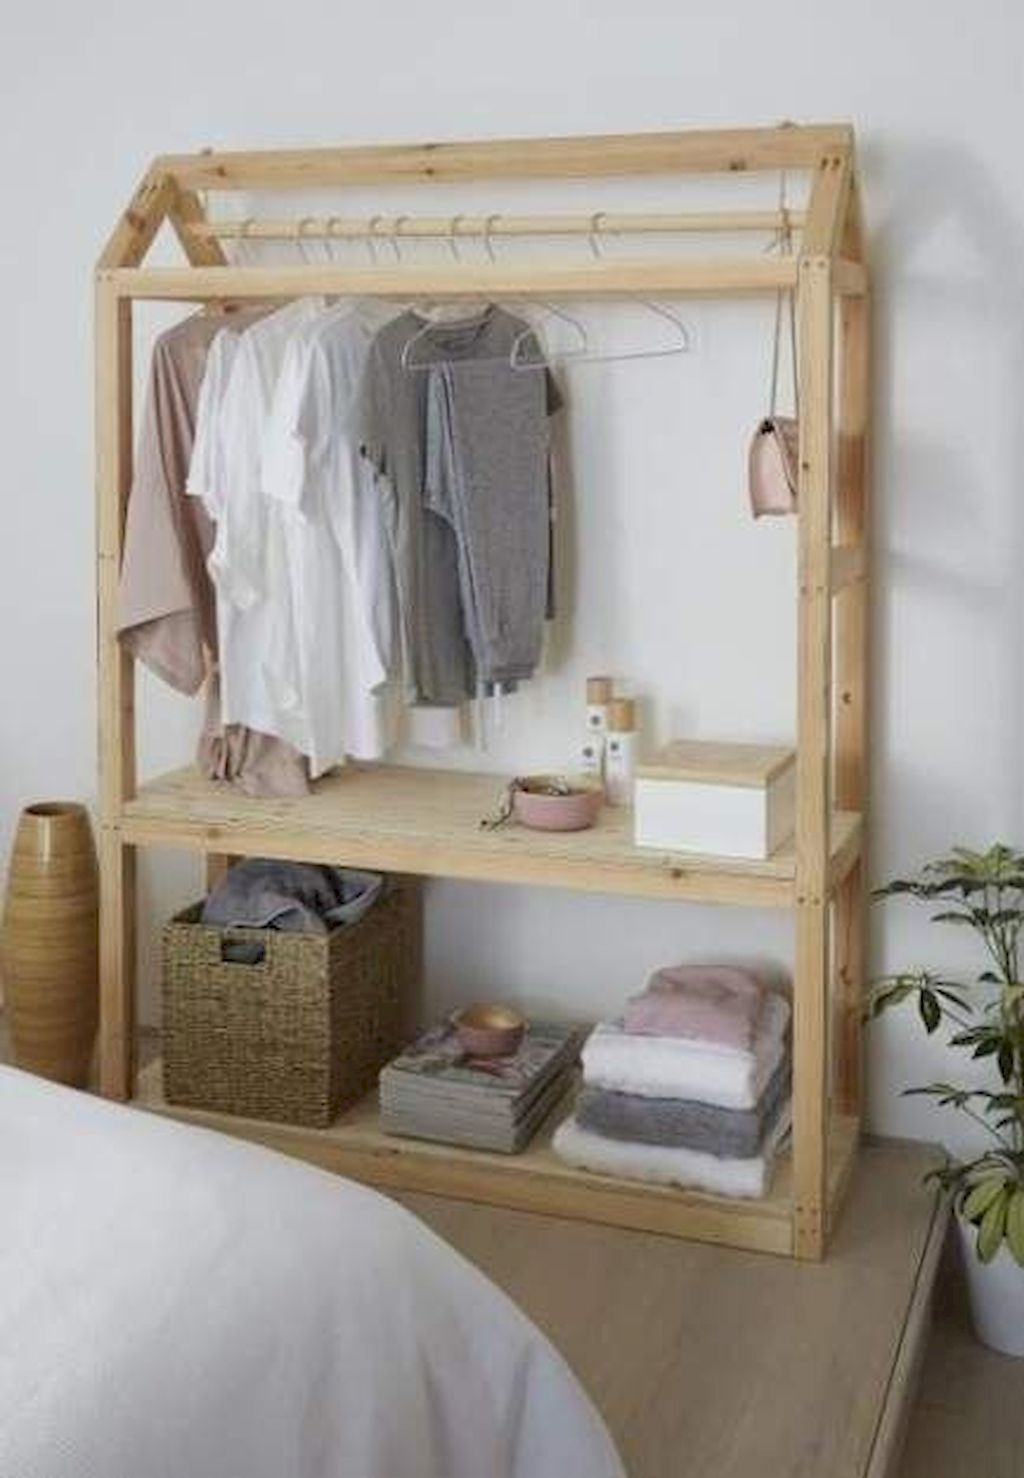 Addressing what great can diy fitted closets do to your